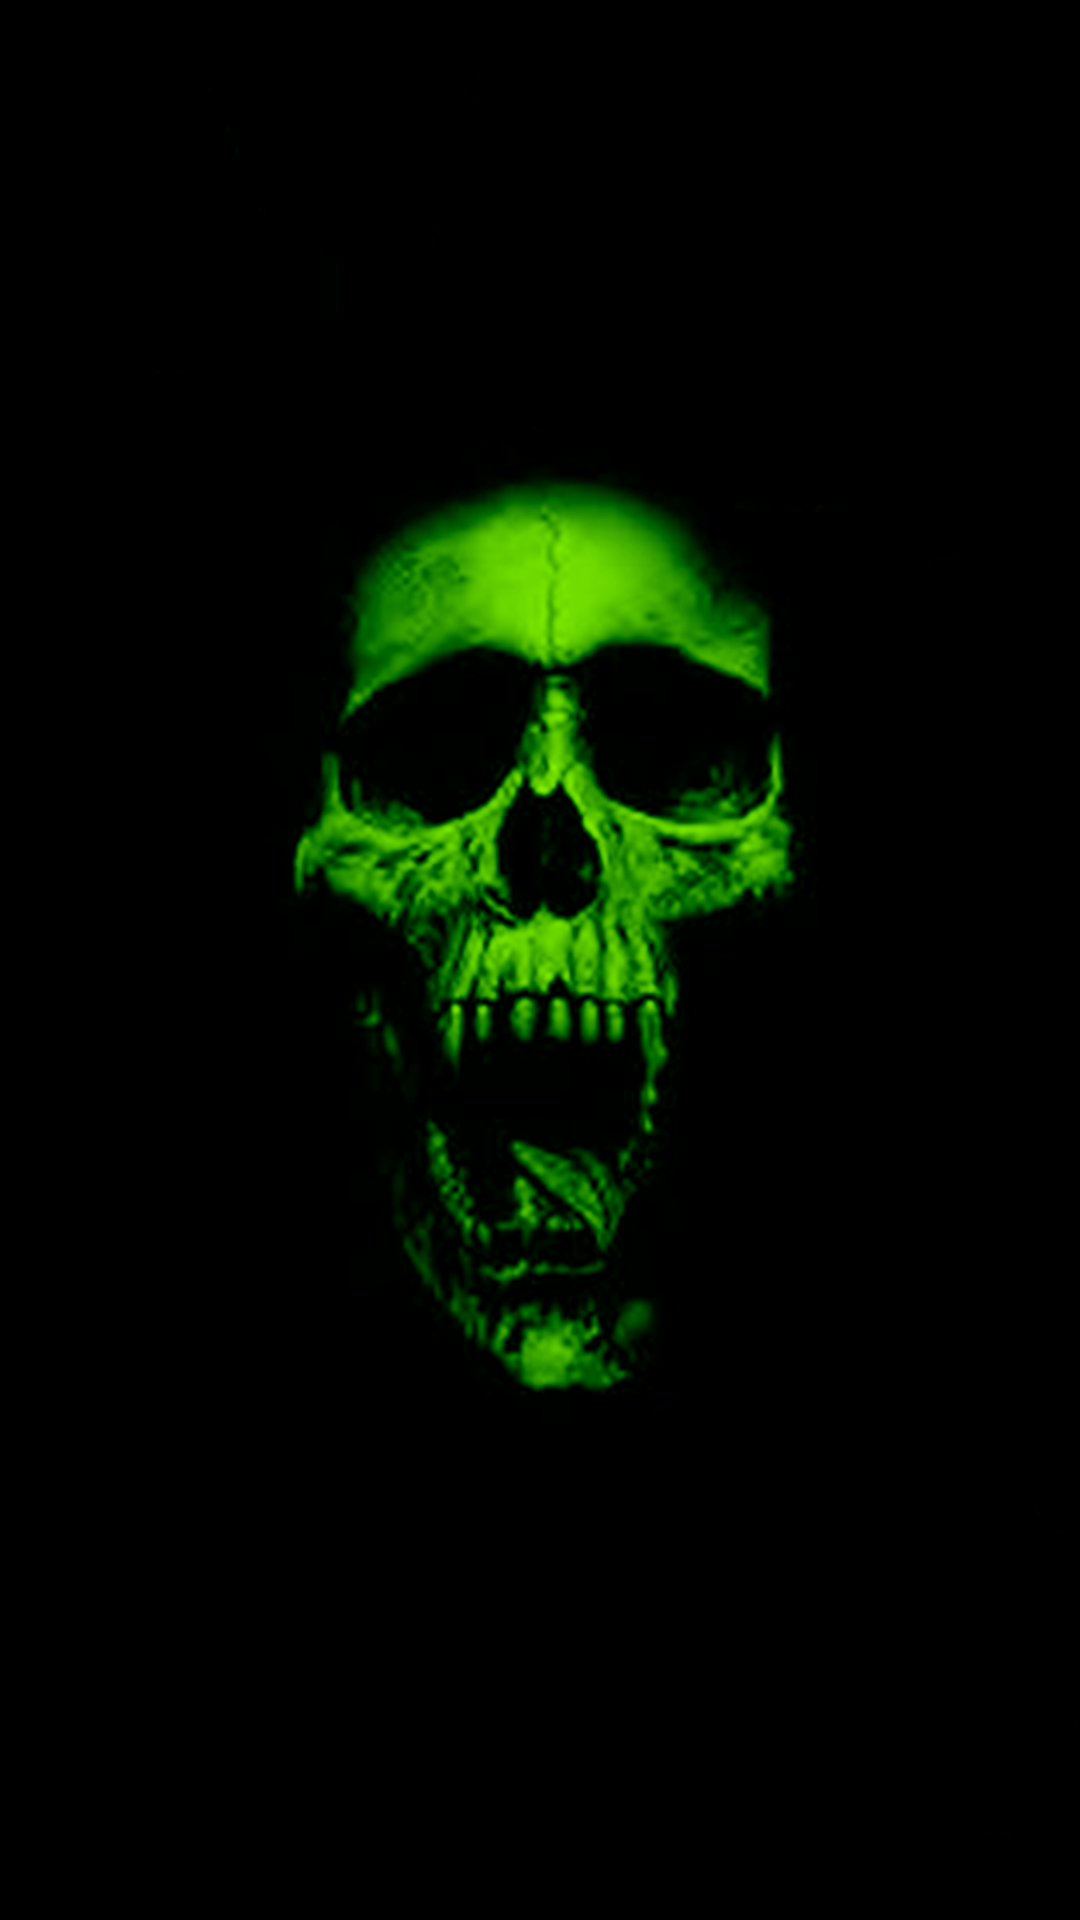 Green Skull IPhone Wallpaper